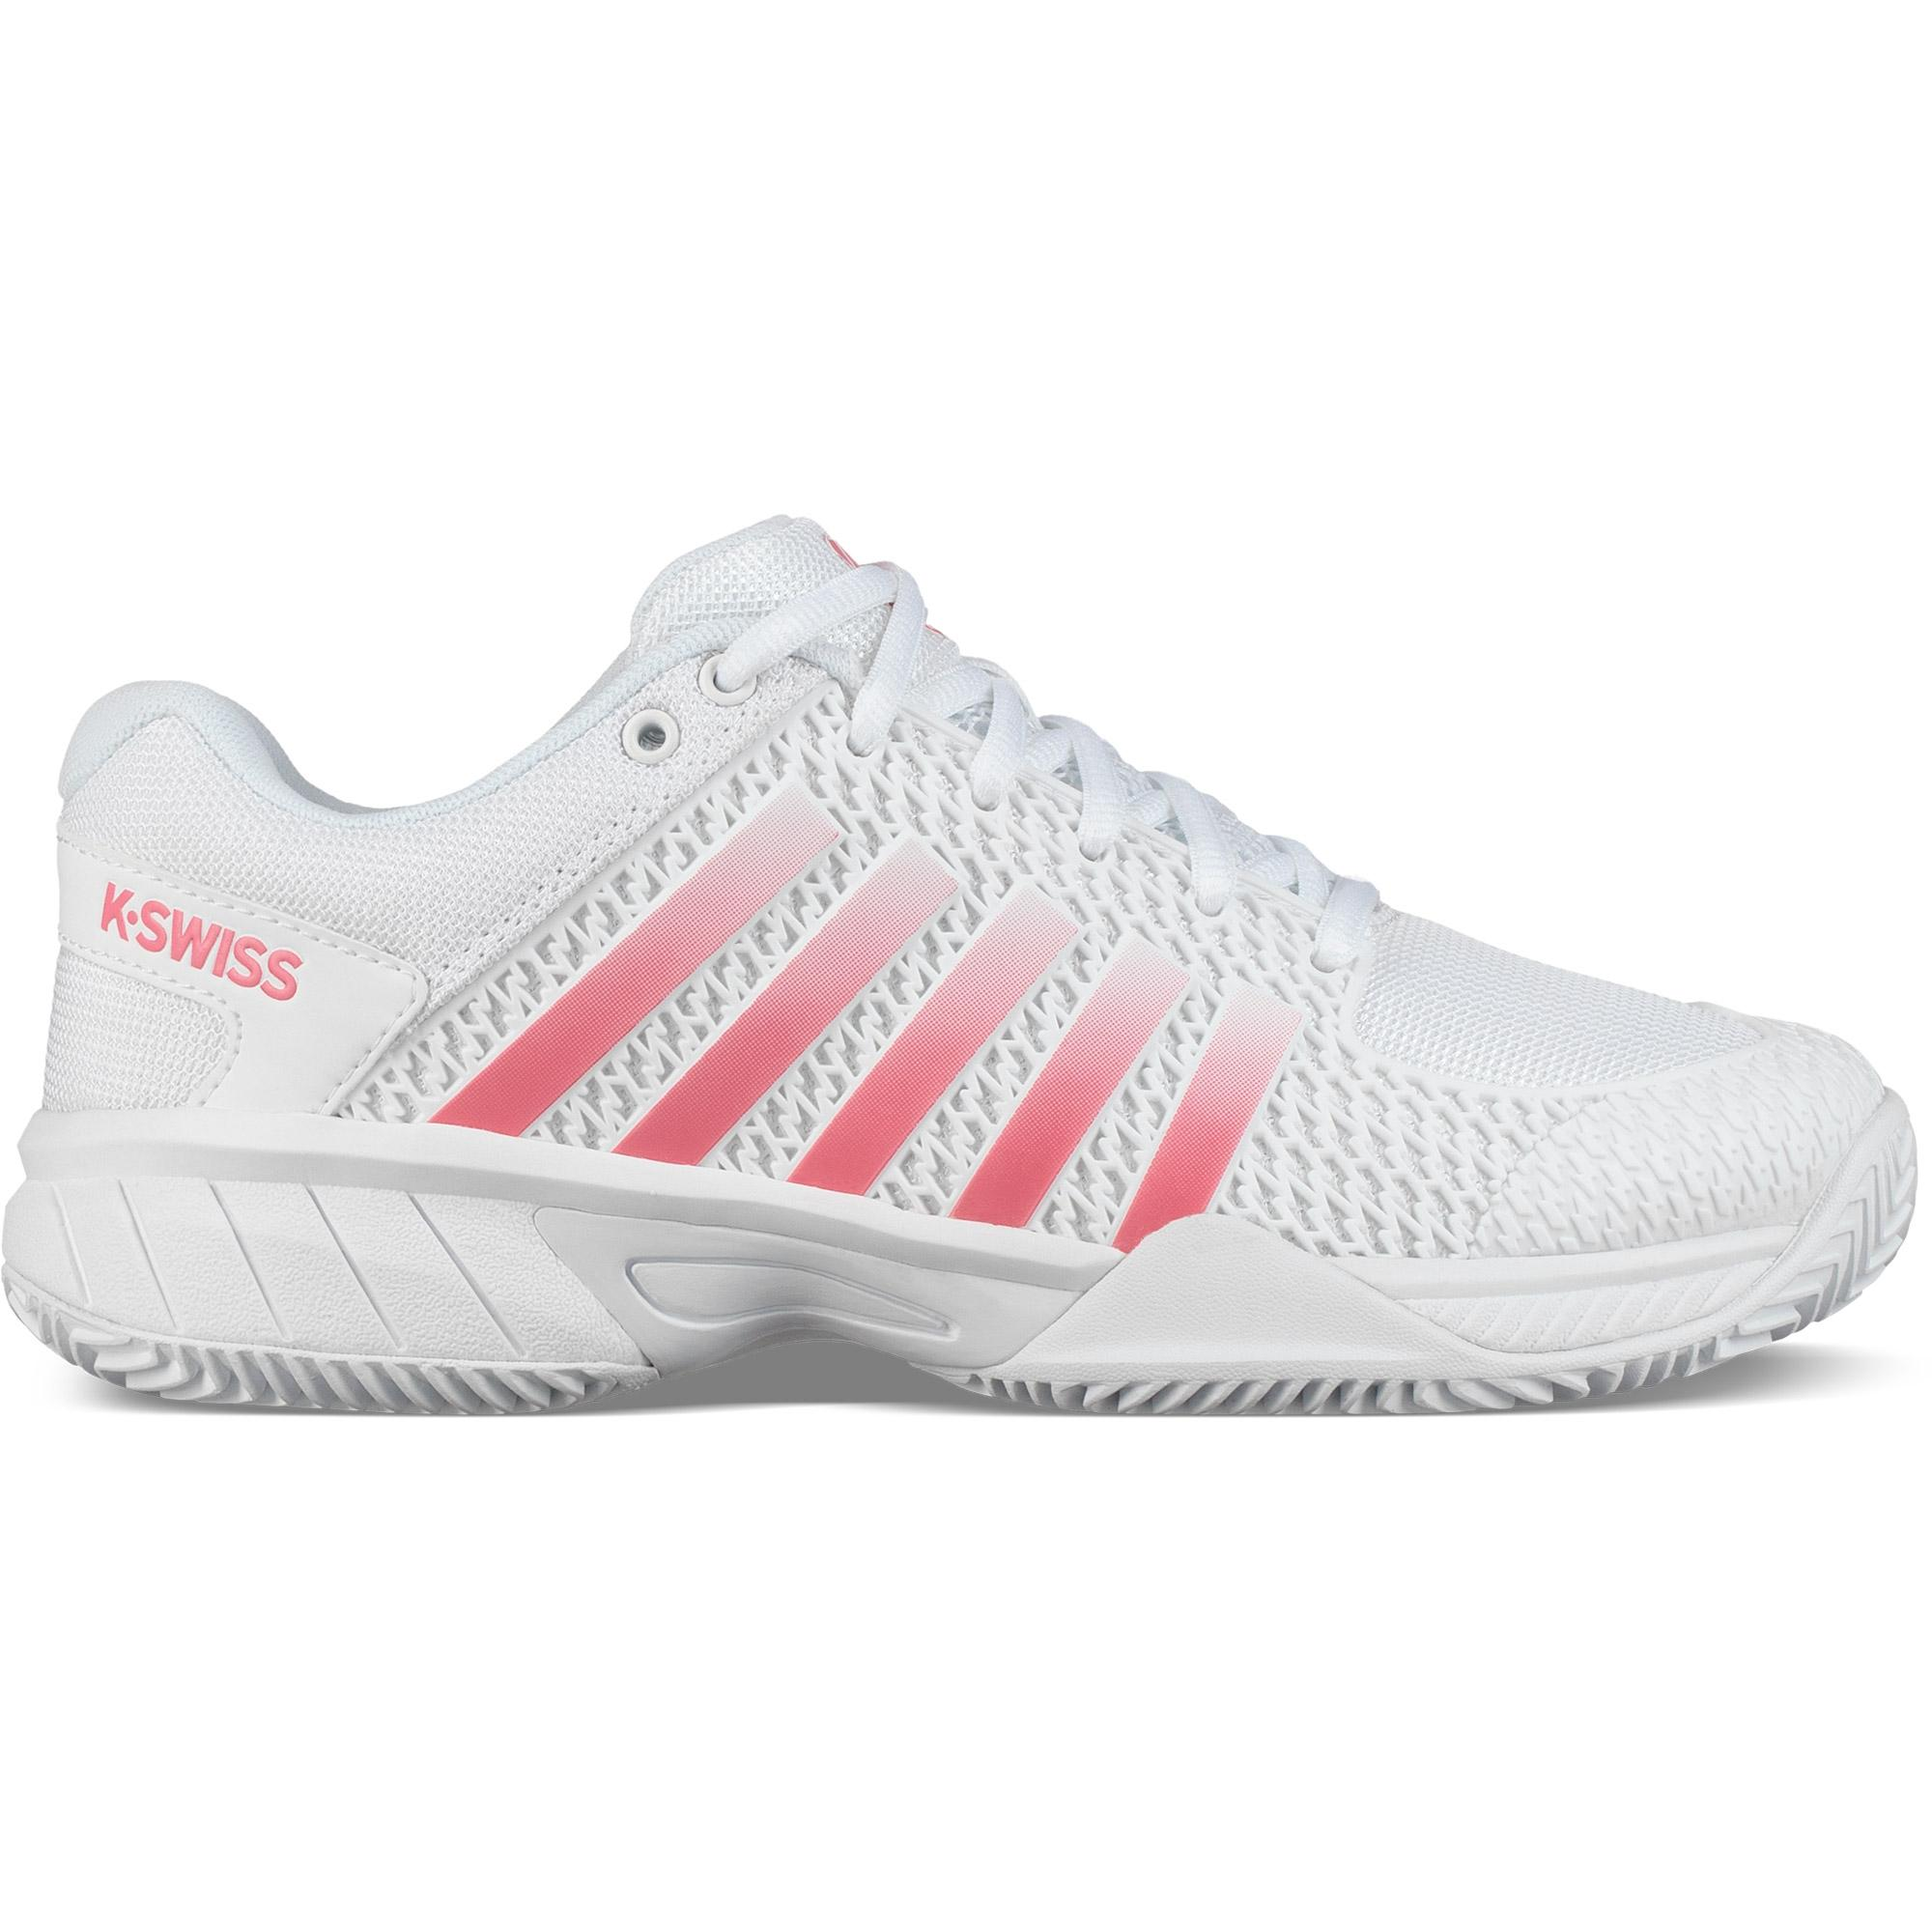 30b7c763 K-Swiss Womens Express Light HB Tennis Shoes - White/PinkLemonade -  Tennisnuts.com